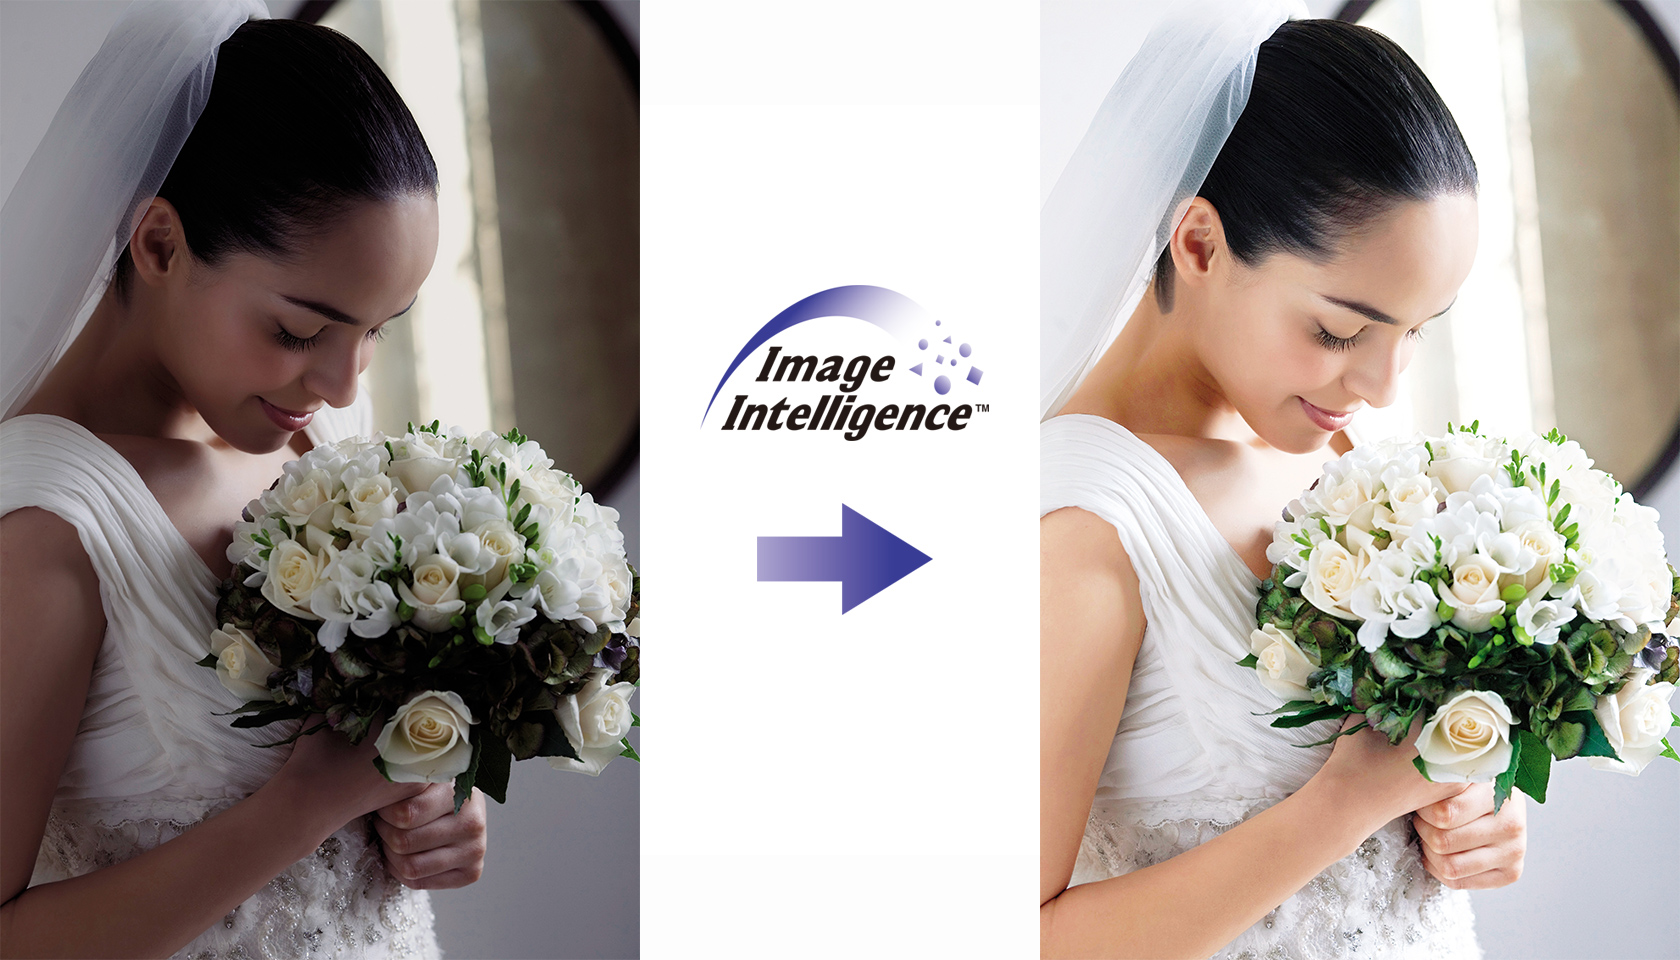 [photo] A side by side of a salvaged photo of a bride smelling her bouquet using Image Intelligence